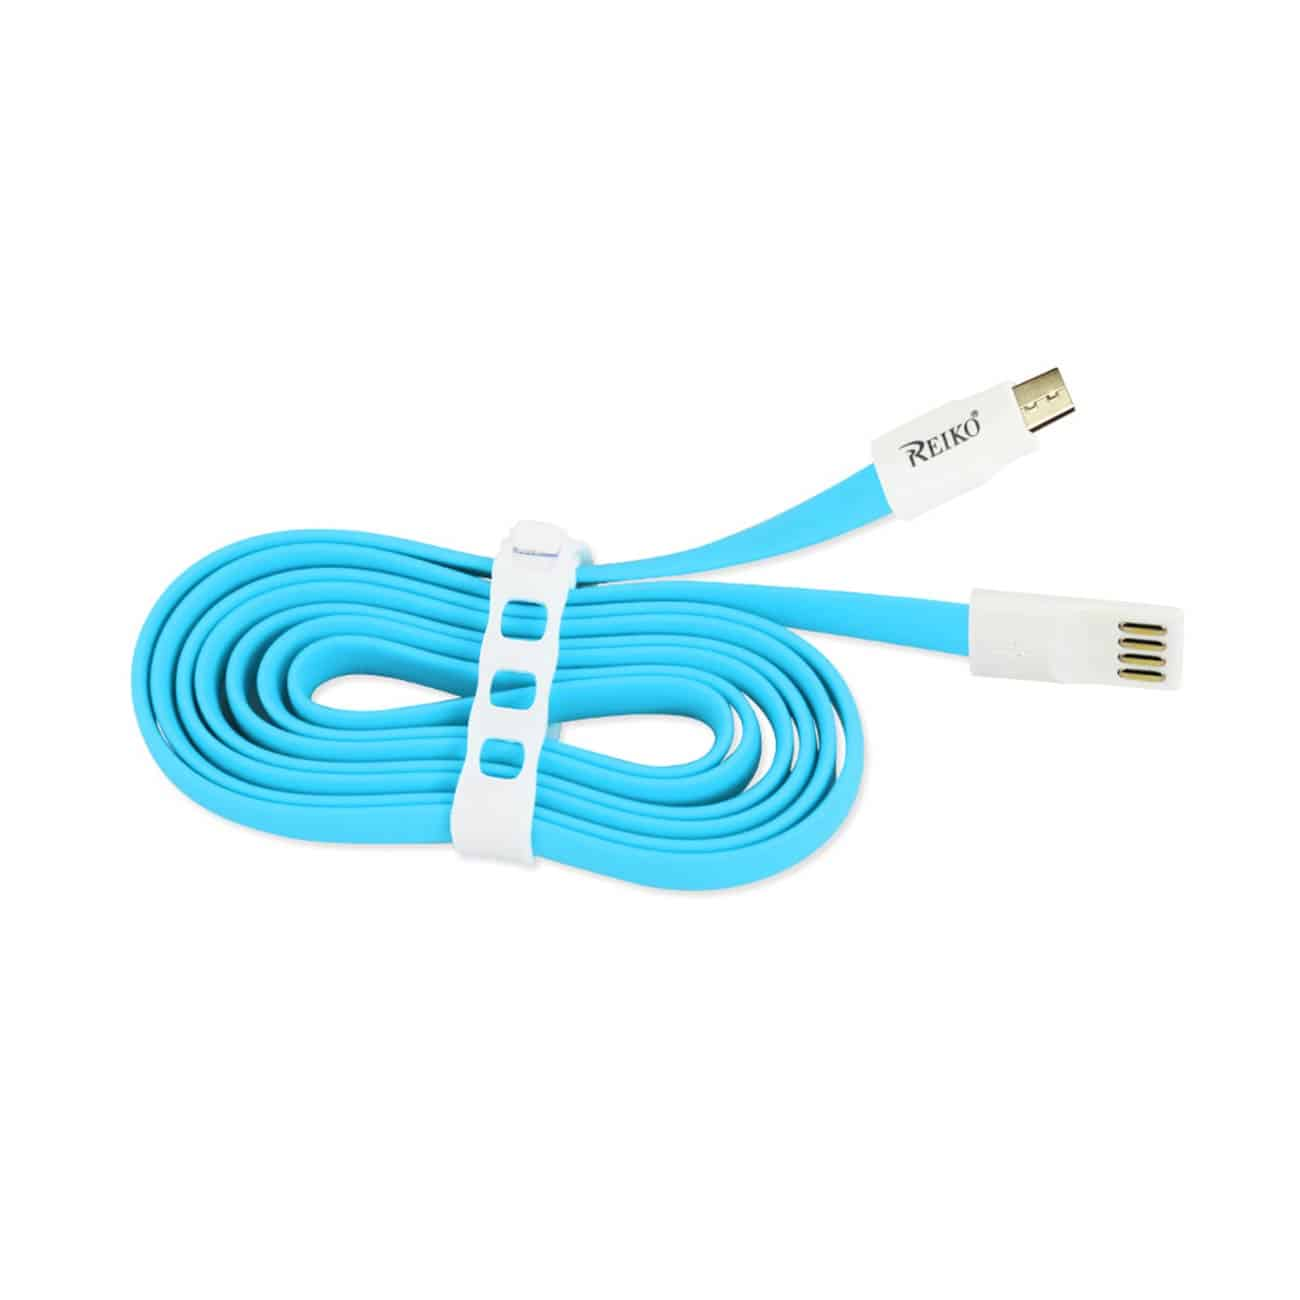 FLAT MICRO USB GOLD PLATED DATA CABLE 3.9FT WITH CABLE TIE IN BLUE